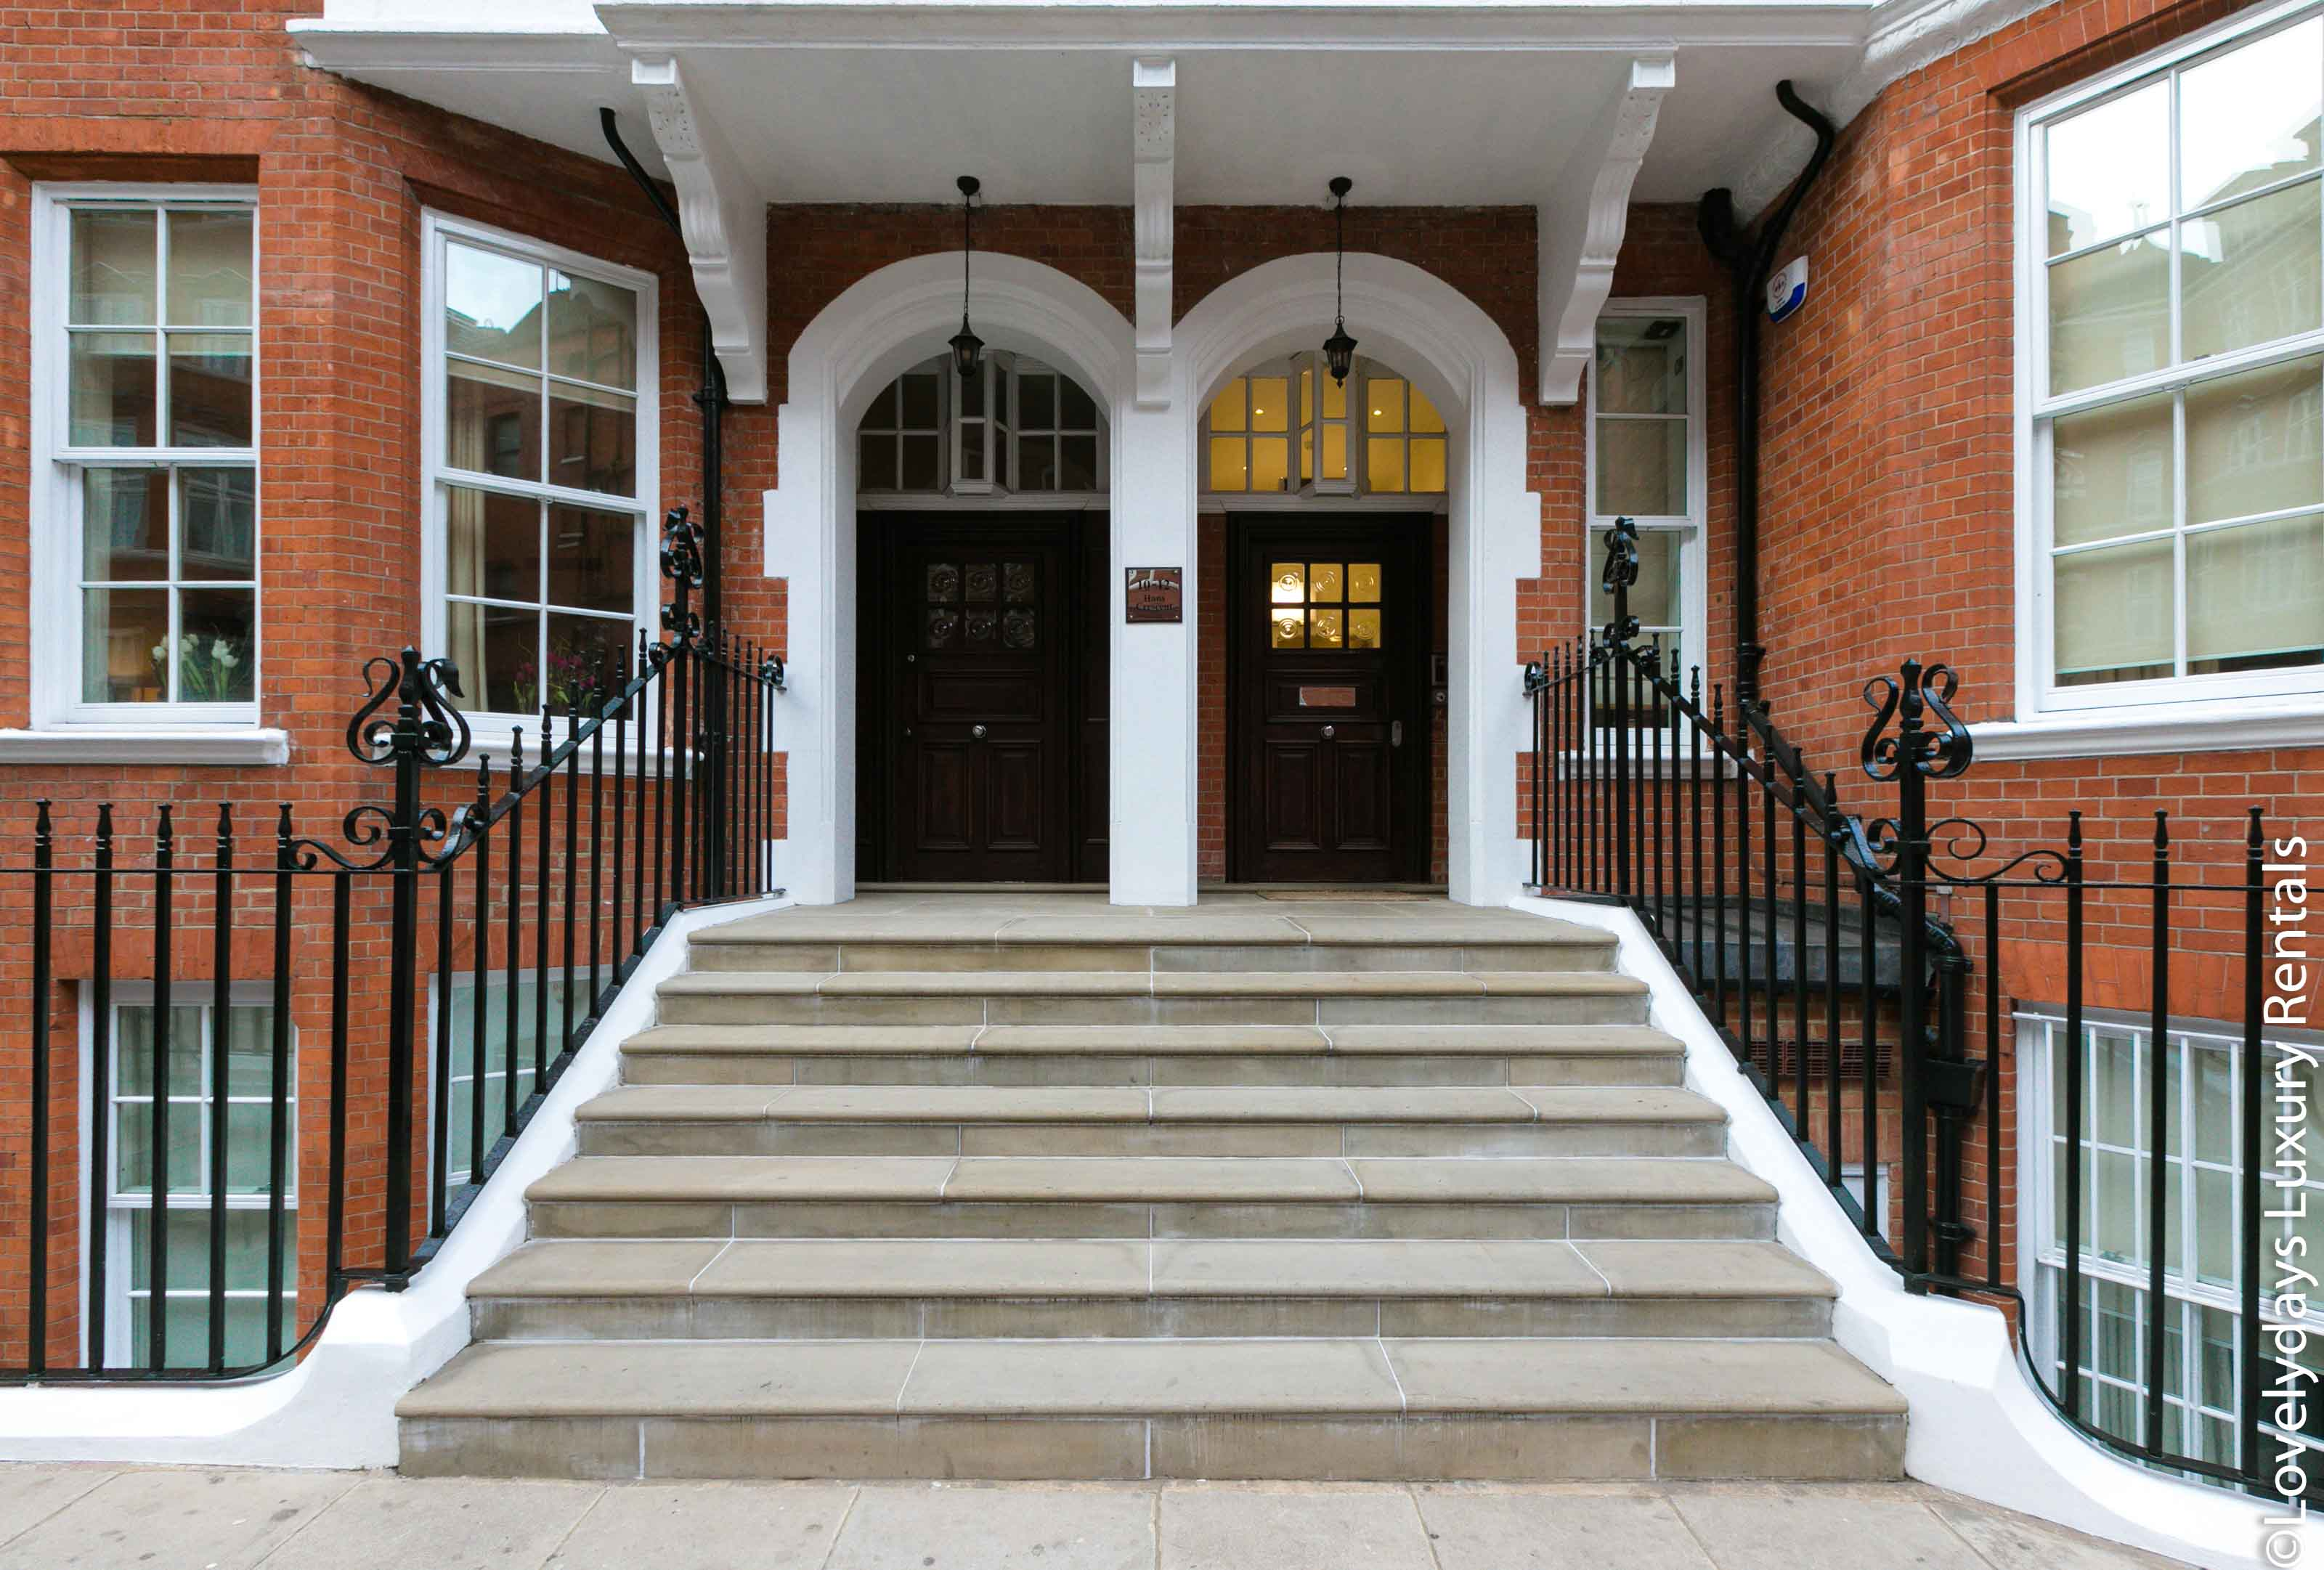 Lovelydays luxury service apartment rental - London - Knightsbridge - Hans Crescent - Partner - 2 bedrooms - 2 bathrooms - Hallway - bfb00e8f4e3d - Lovelydays